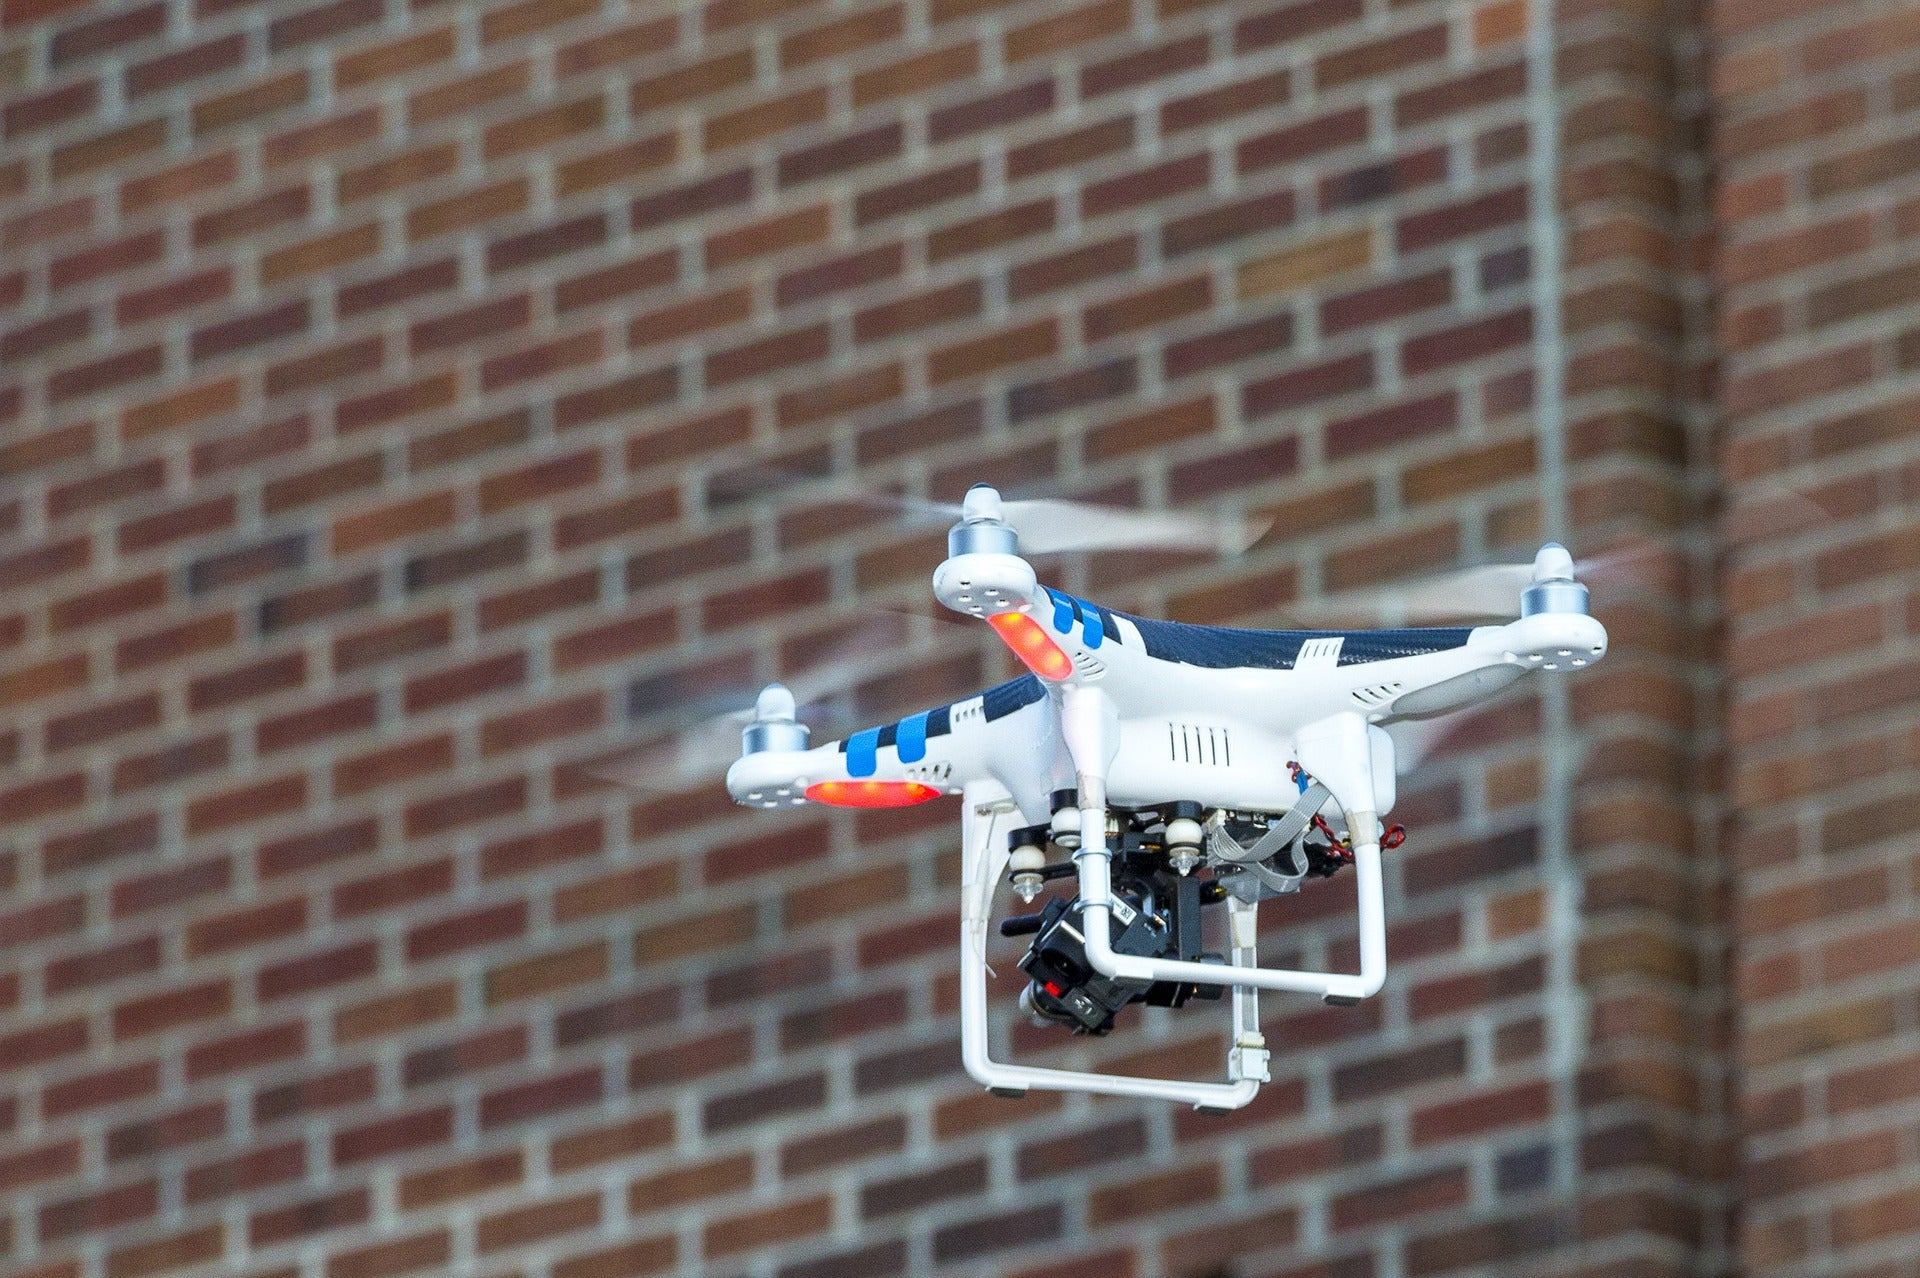 A drone files next to the brick wall of a building